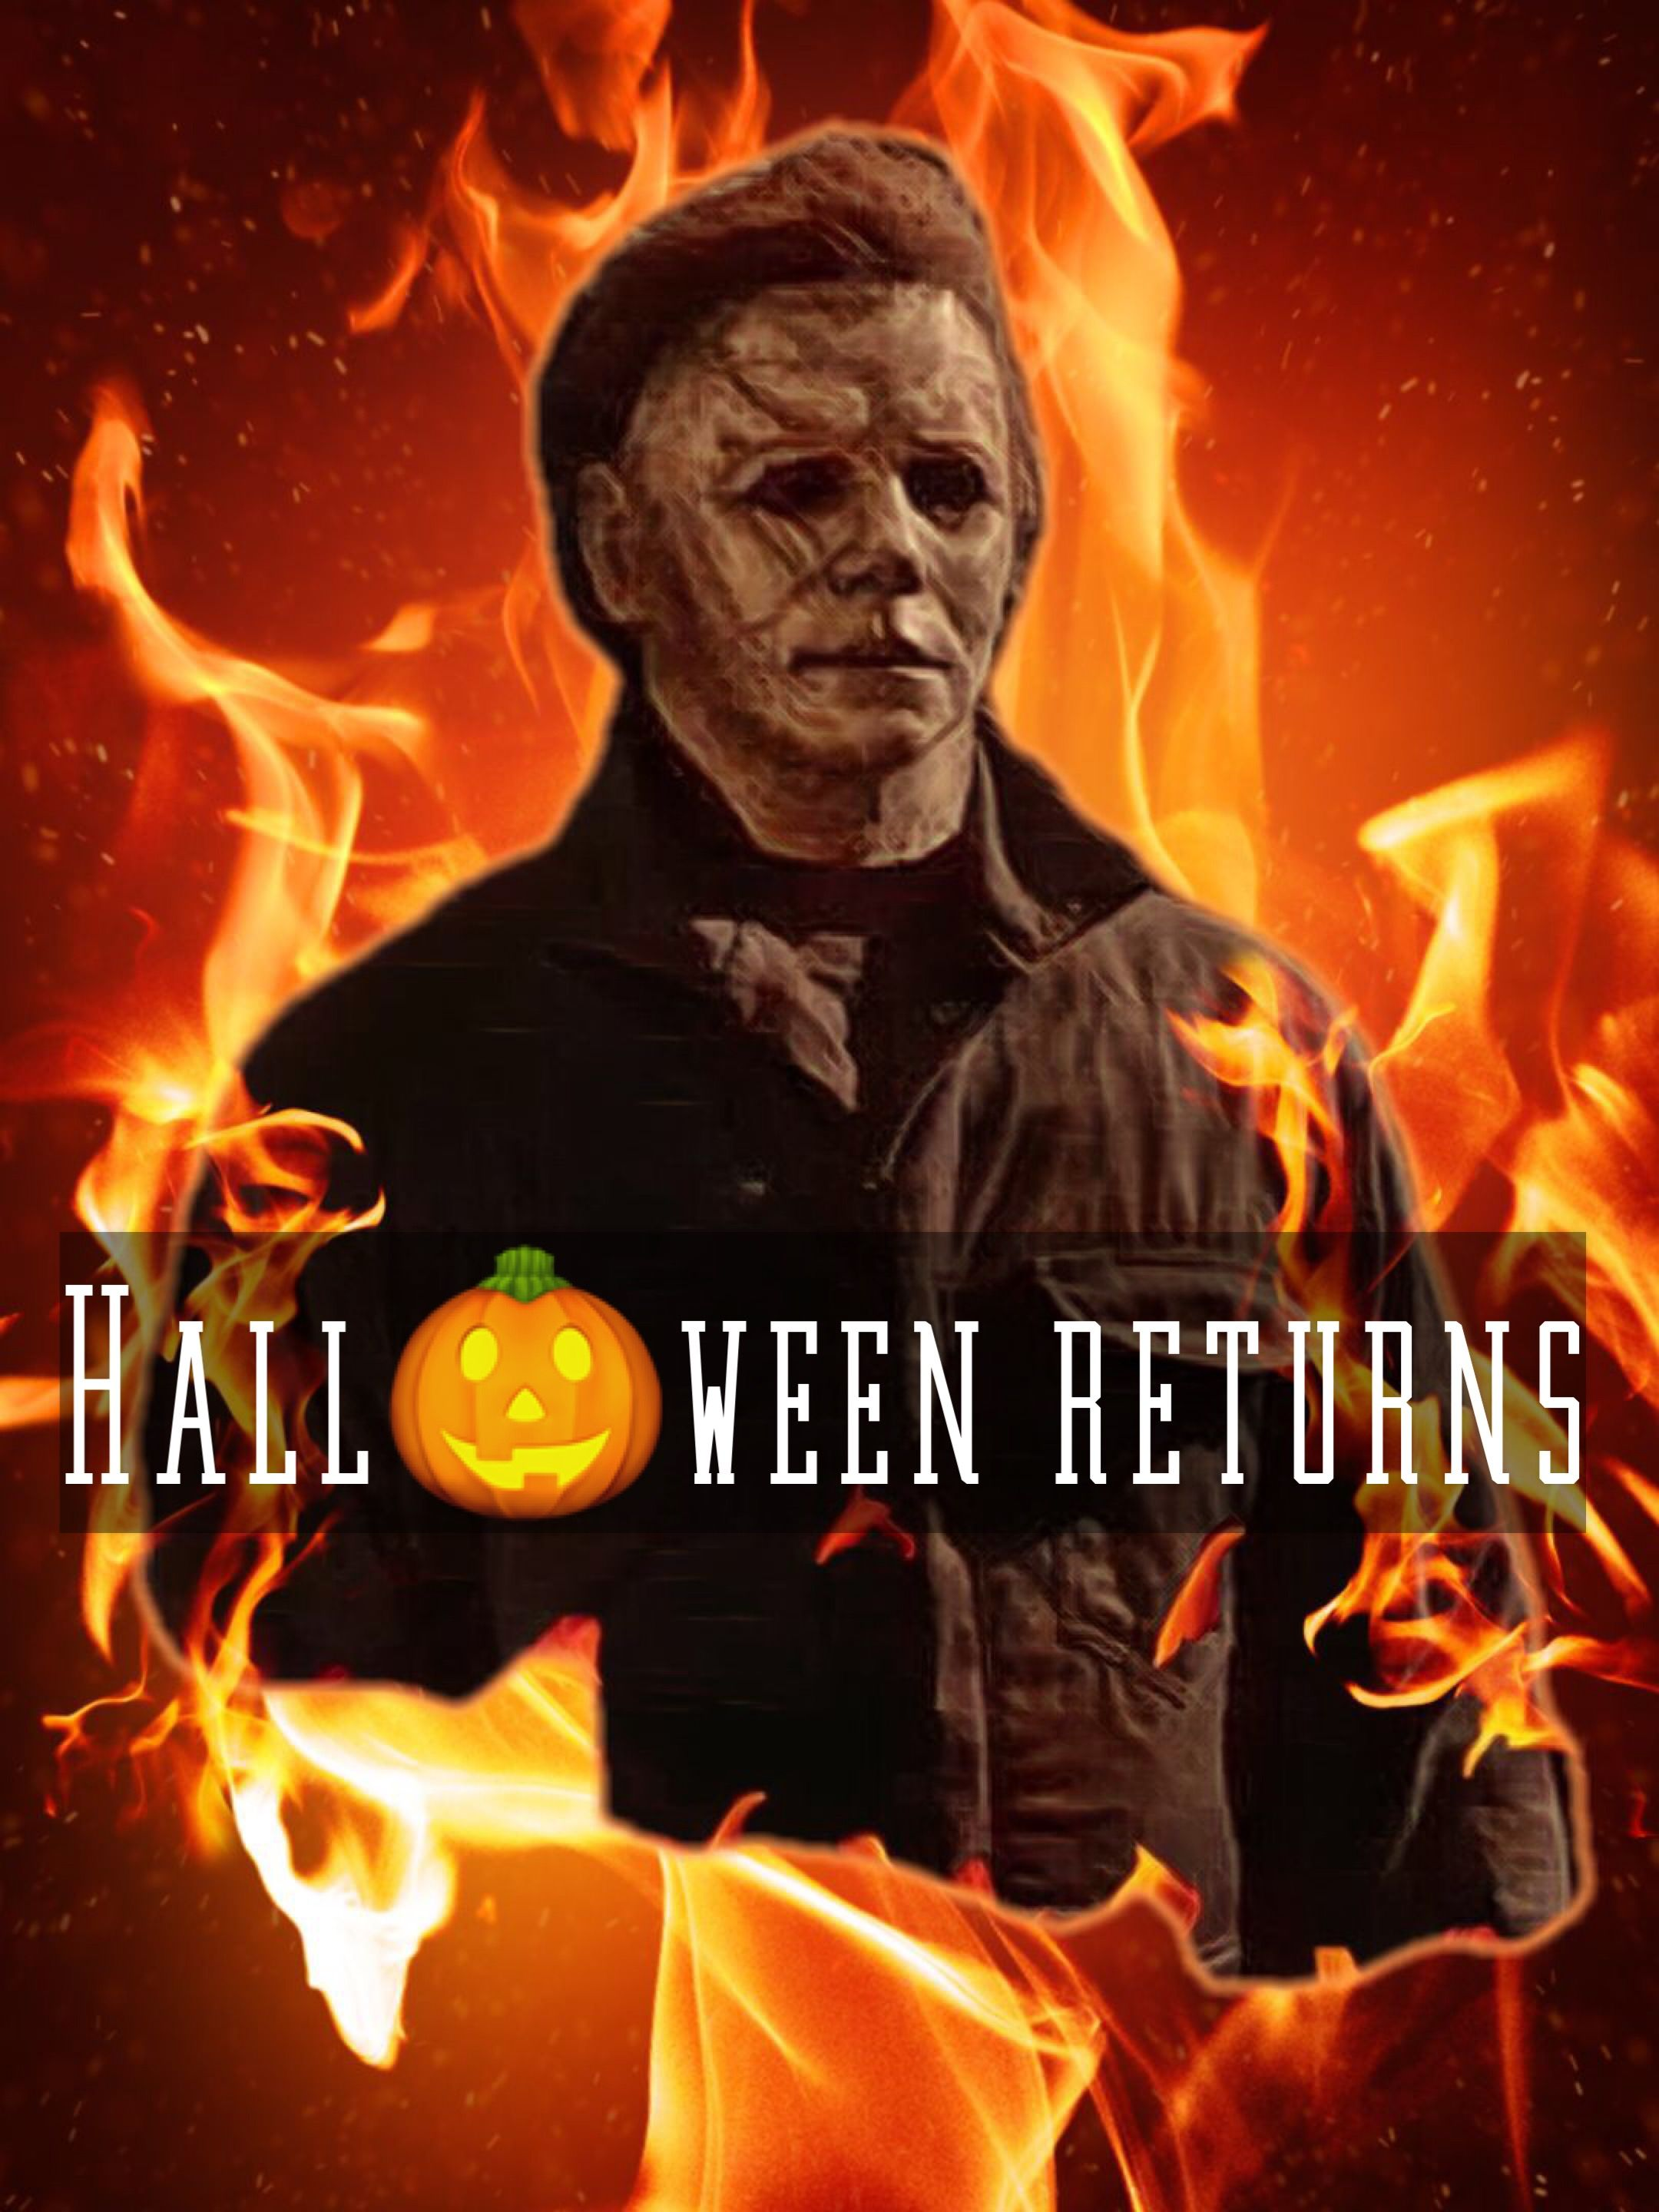 Halloween 2020 Michael Myers Halloween | Halloween film, Michael myers halloween, Halloween movies